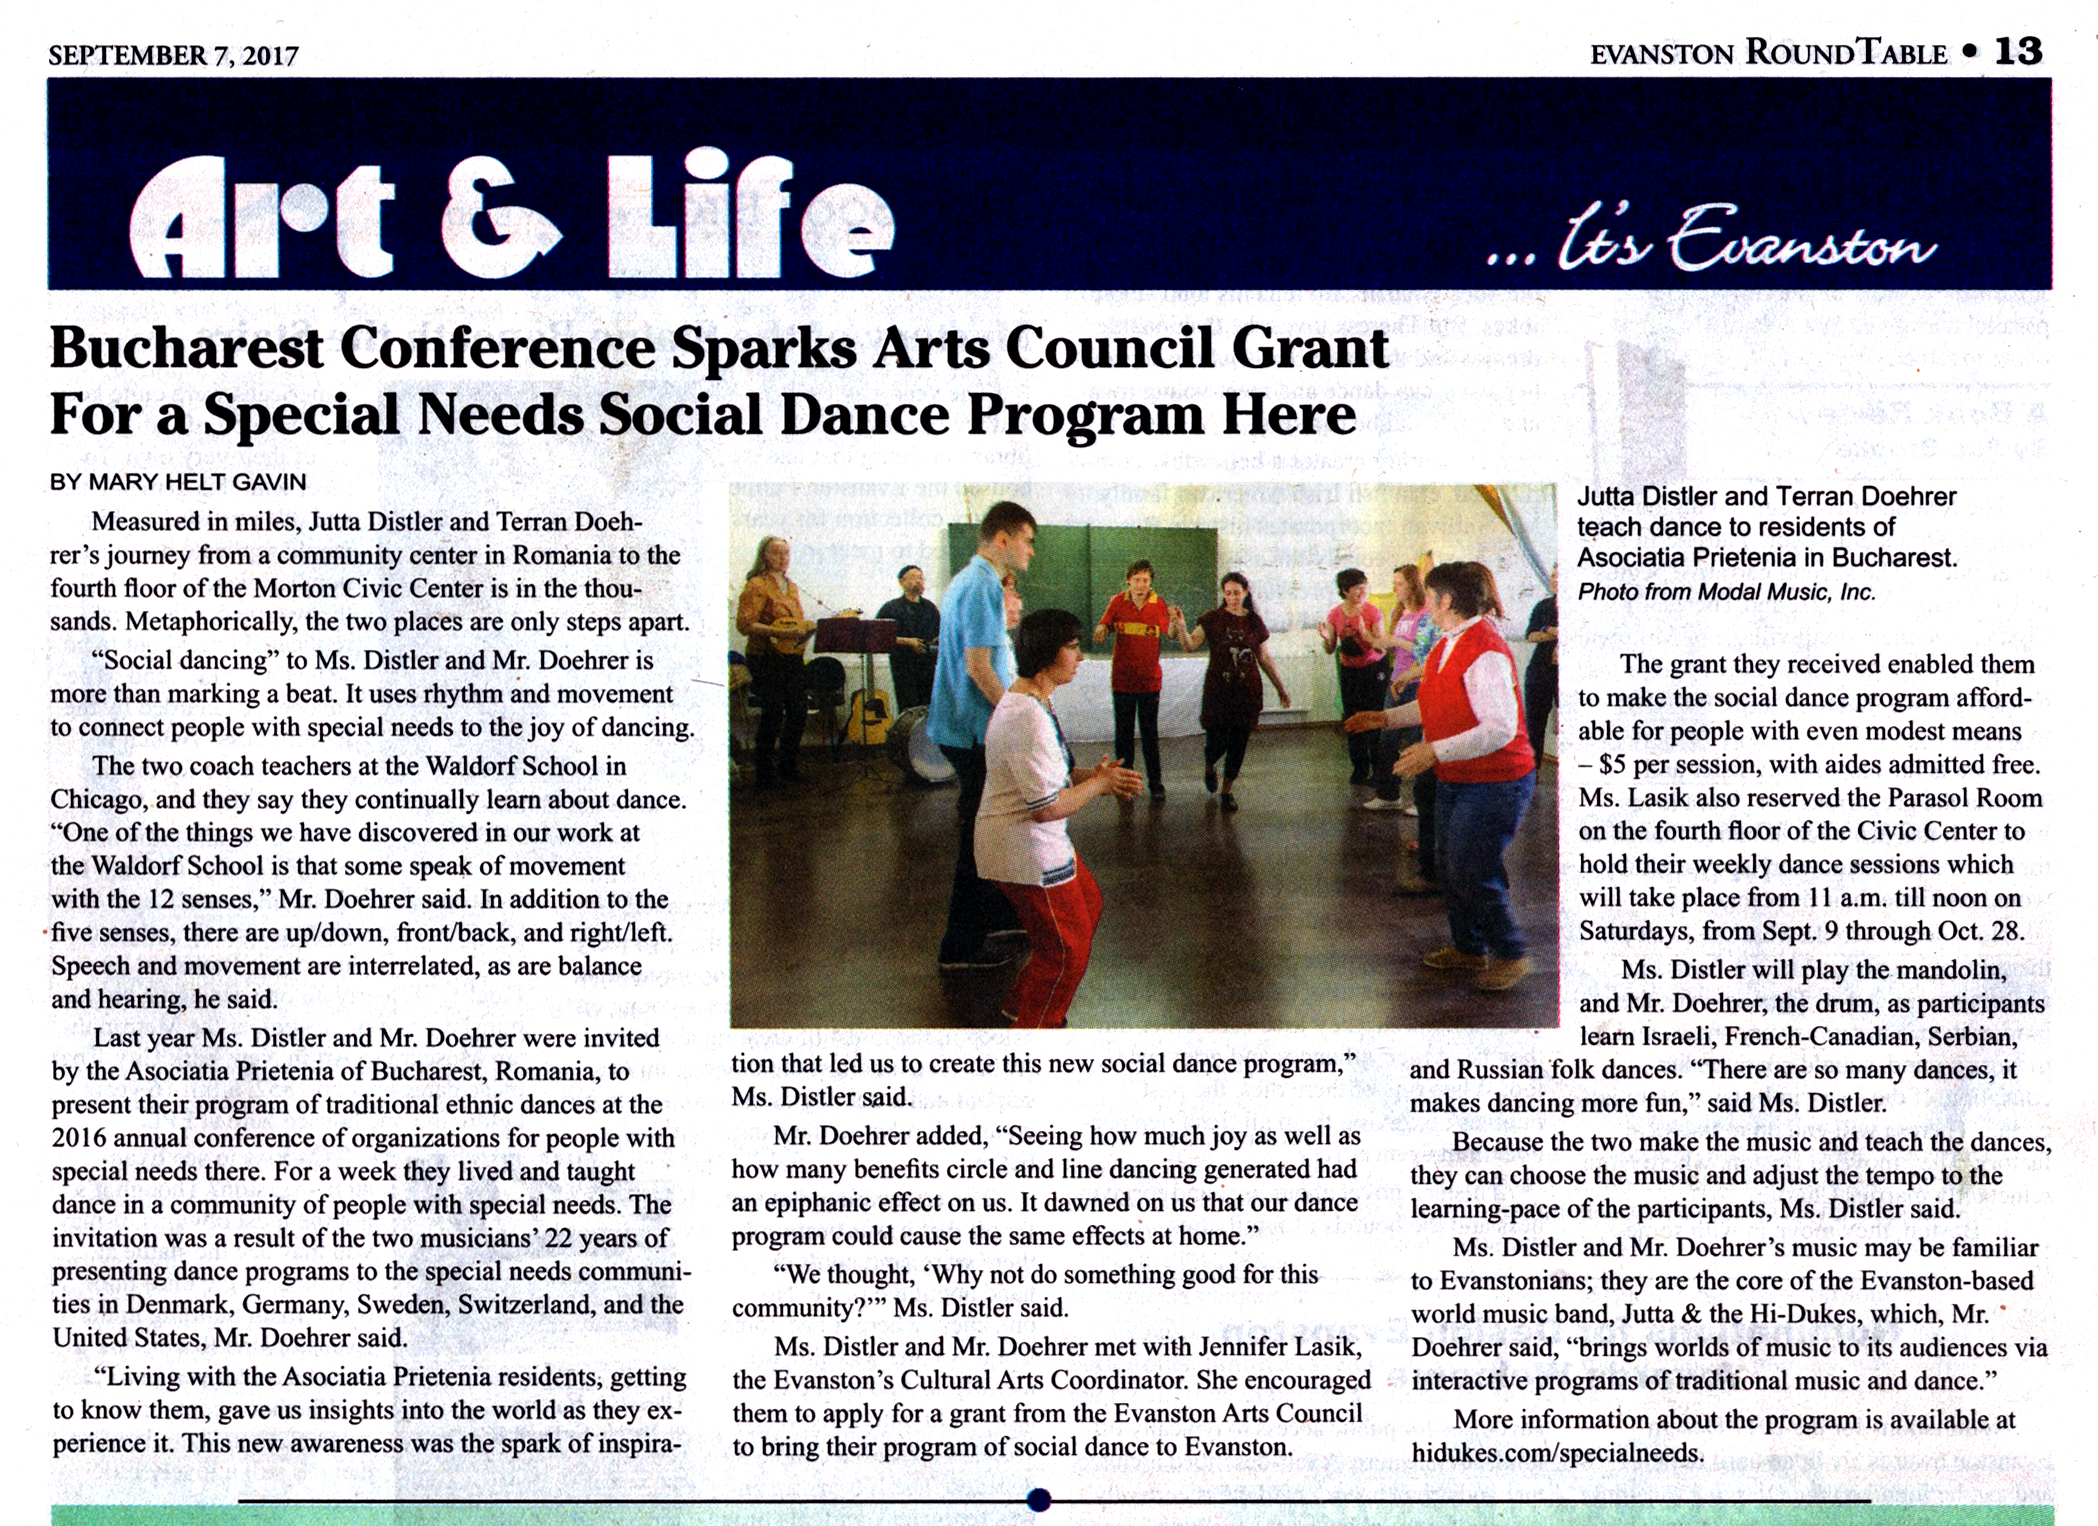 Evanston Round Table article about the Jutta & the Hi-Dukes Special Needs Social Dance program inspired by their work in Romania.